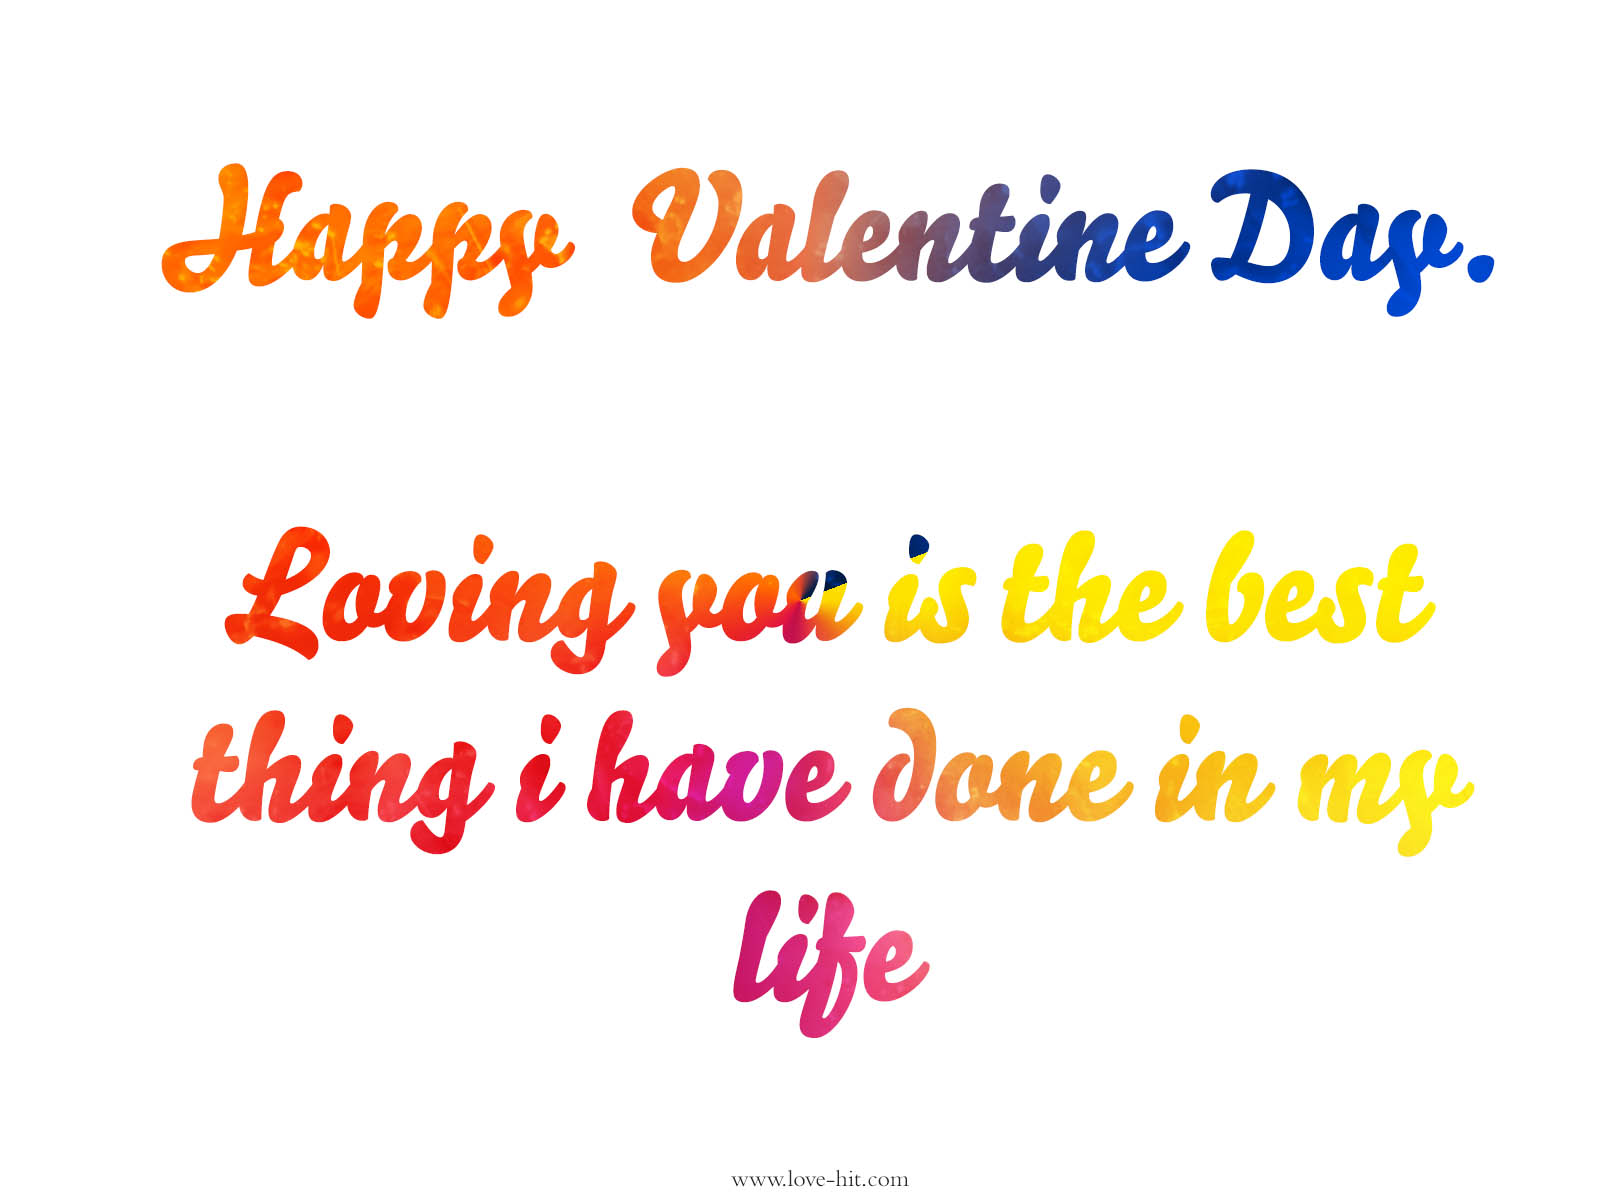 Happy Valentine Day, Loving you is the best thing i have done in my life